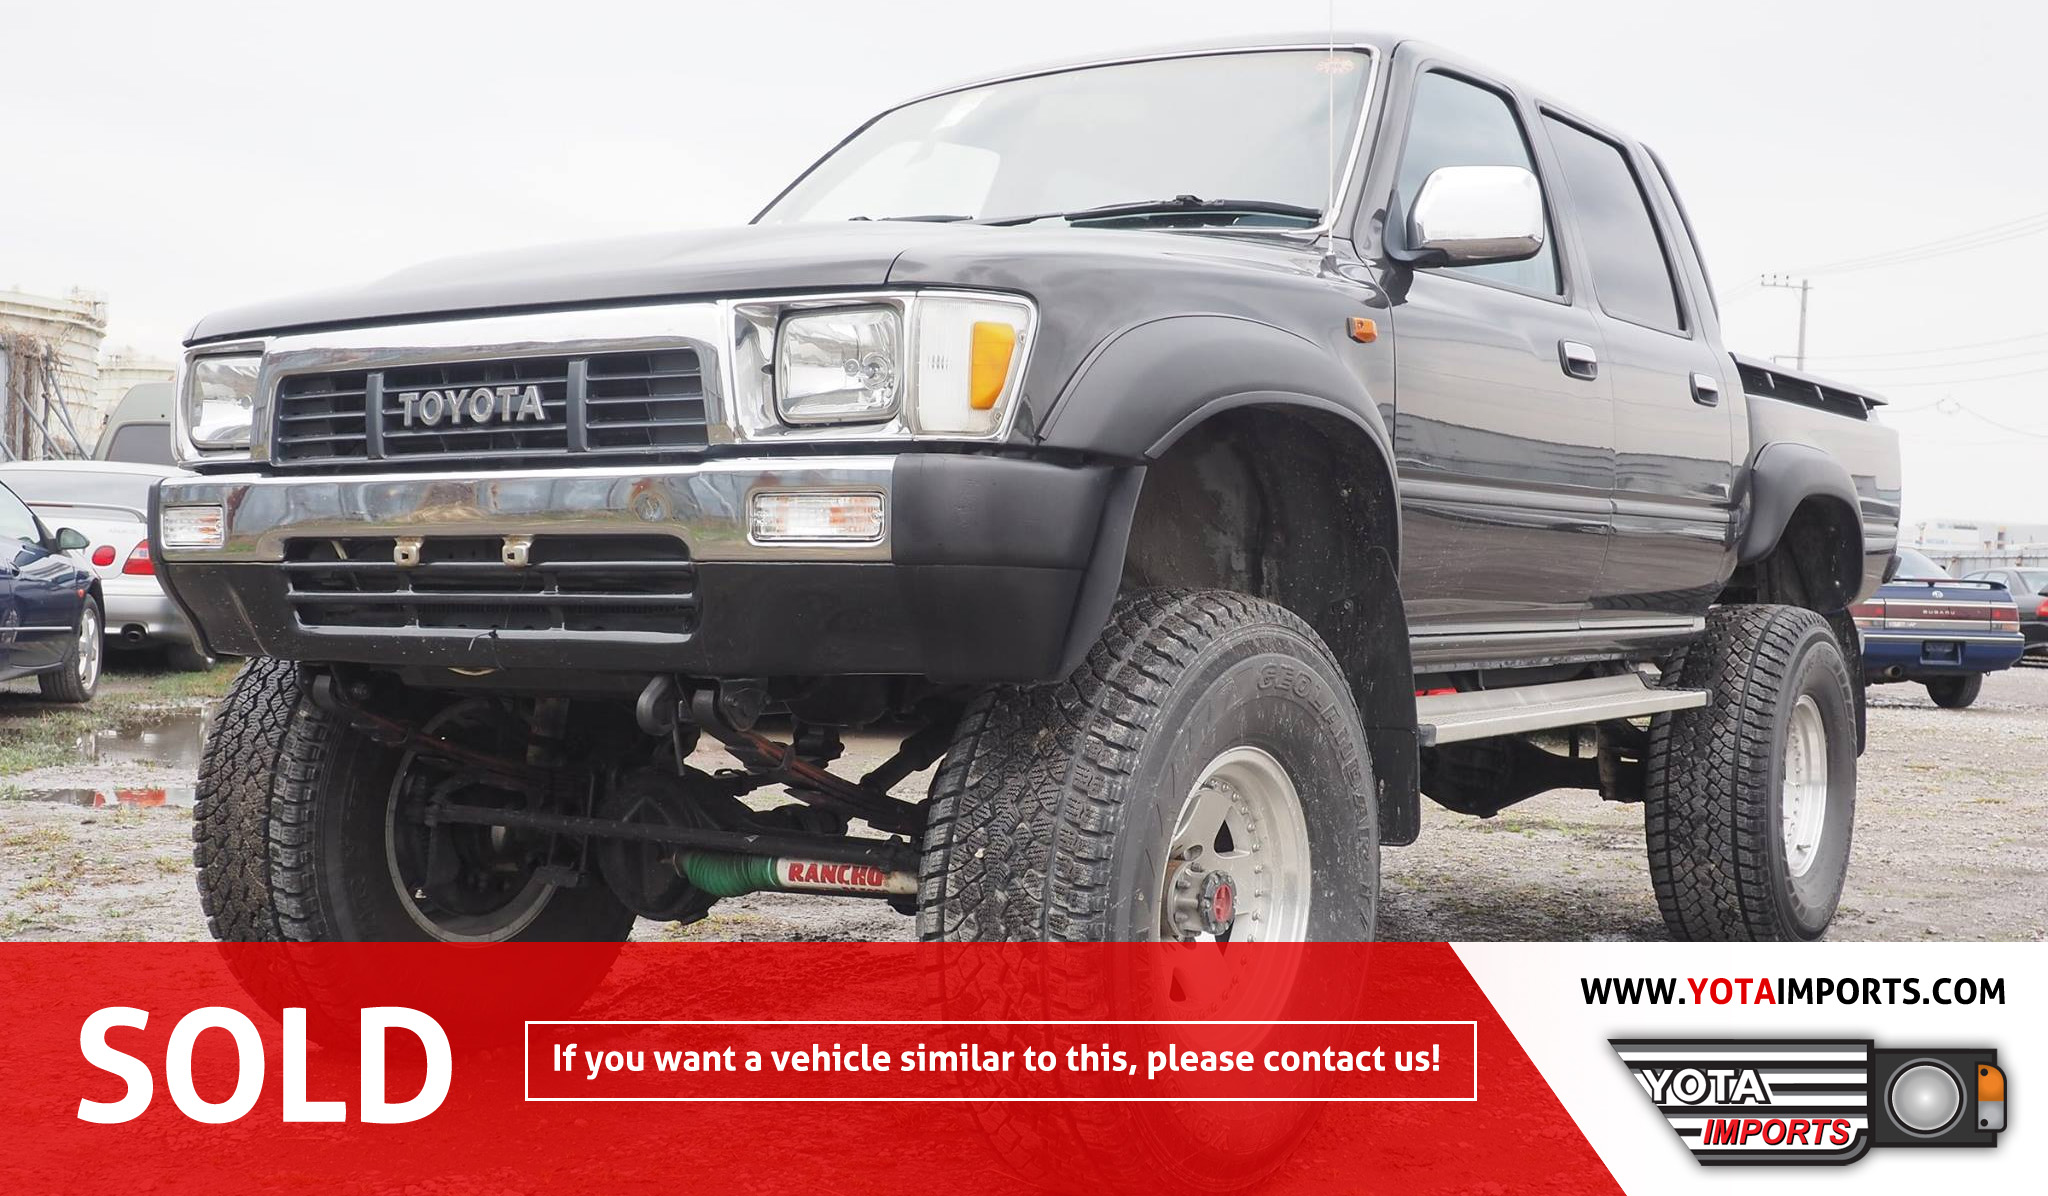 Toyota Pay By Phone >> 1989 Toyota Hilux Double Cab Truck #02915DHL01 – Yota Imports